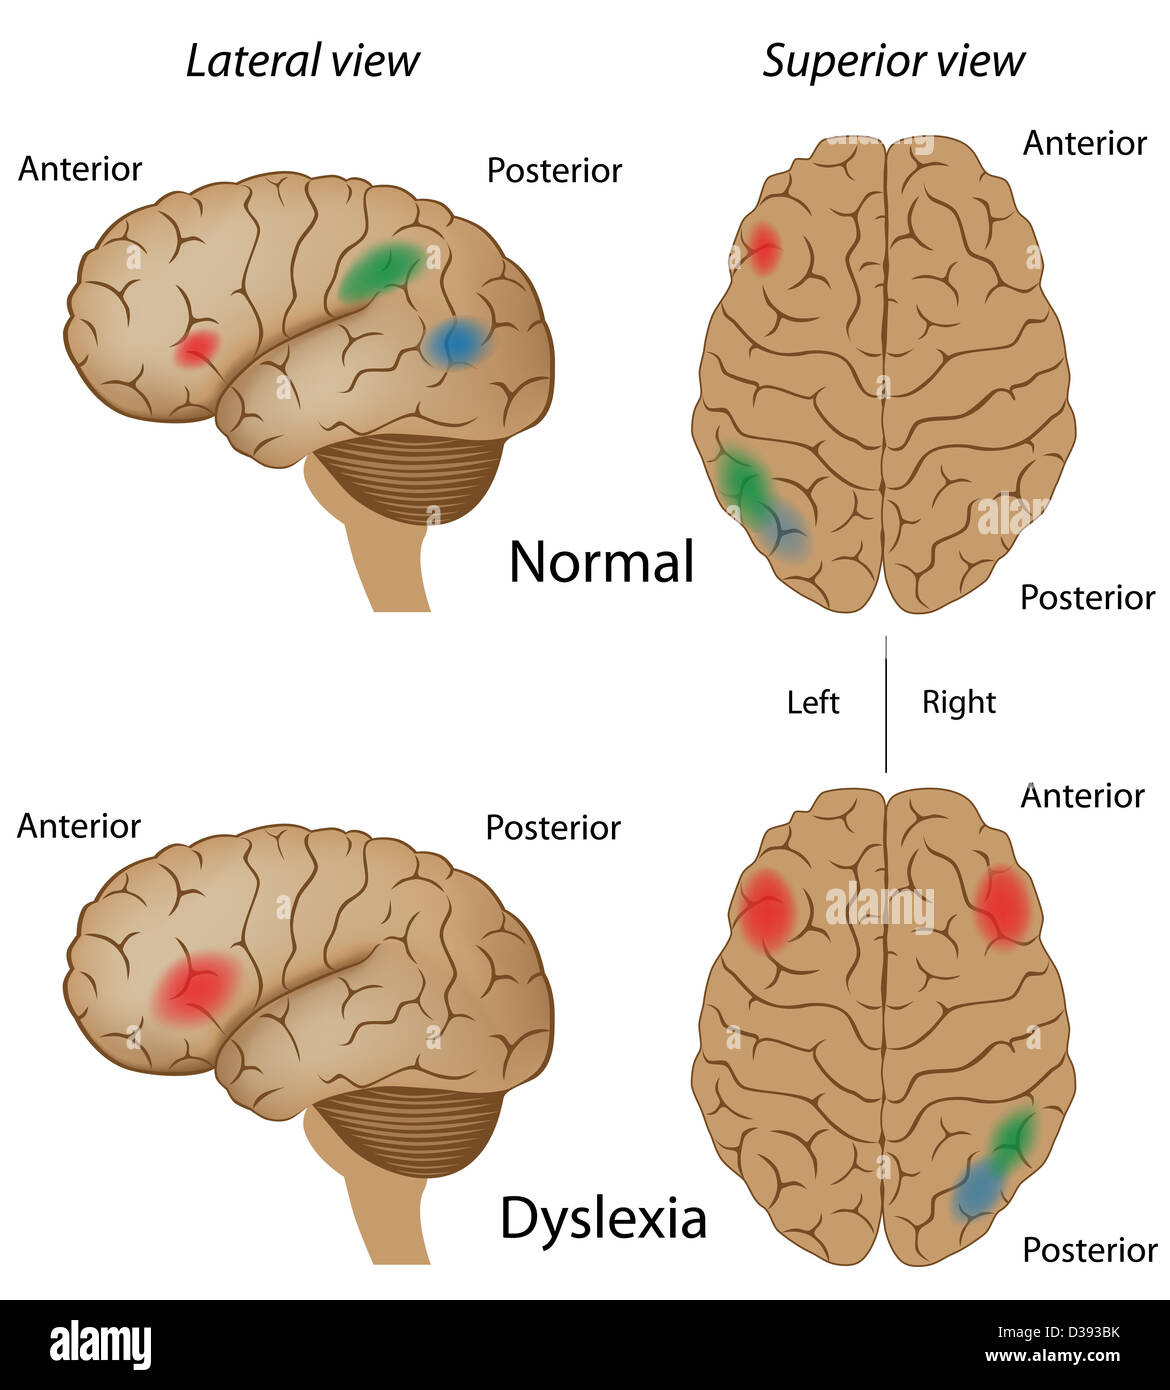 an account of the central area of the brain associated with language Researchers at ucla report that the language areas of the brain seem to go through the most dynamic period of growth between the ages of 6 and 13 about brain connection although the brain accounts for only 2% of the whole body's mass.